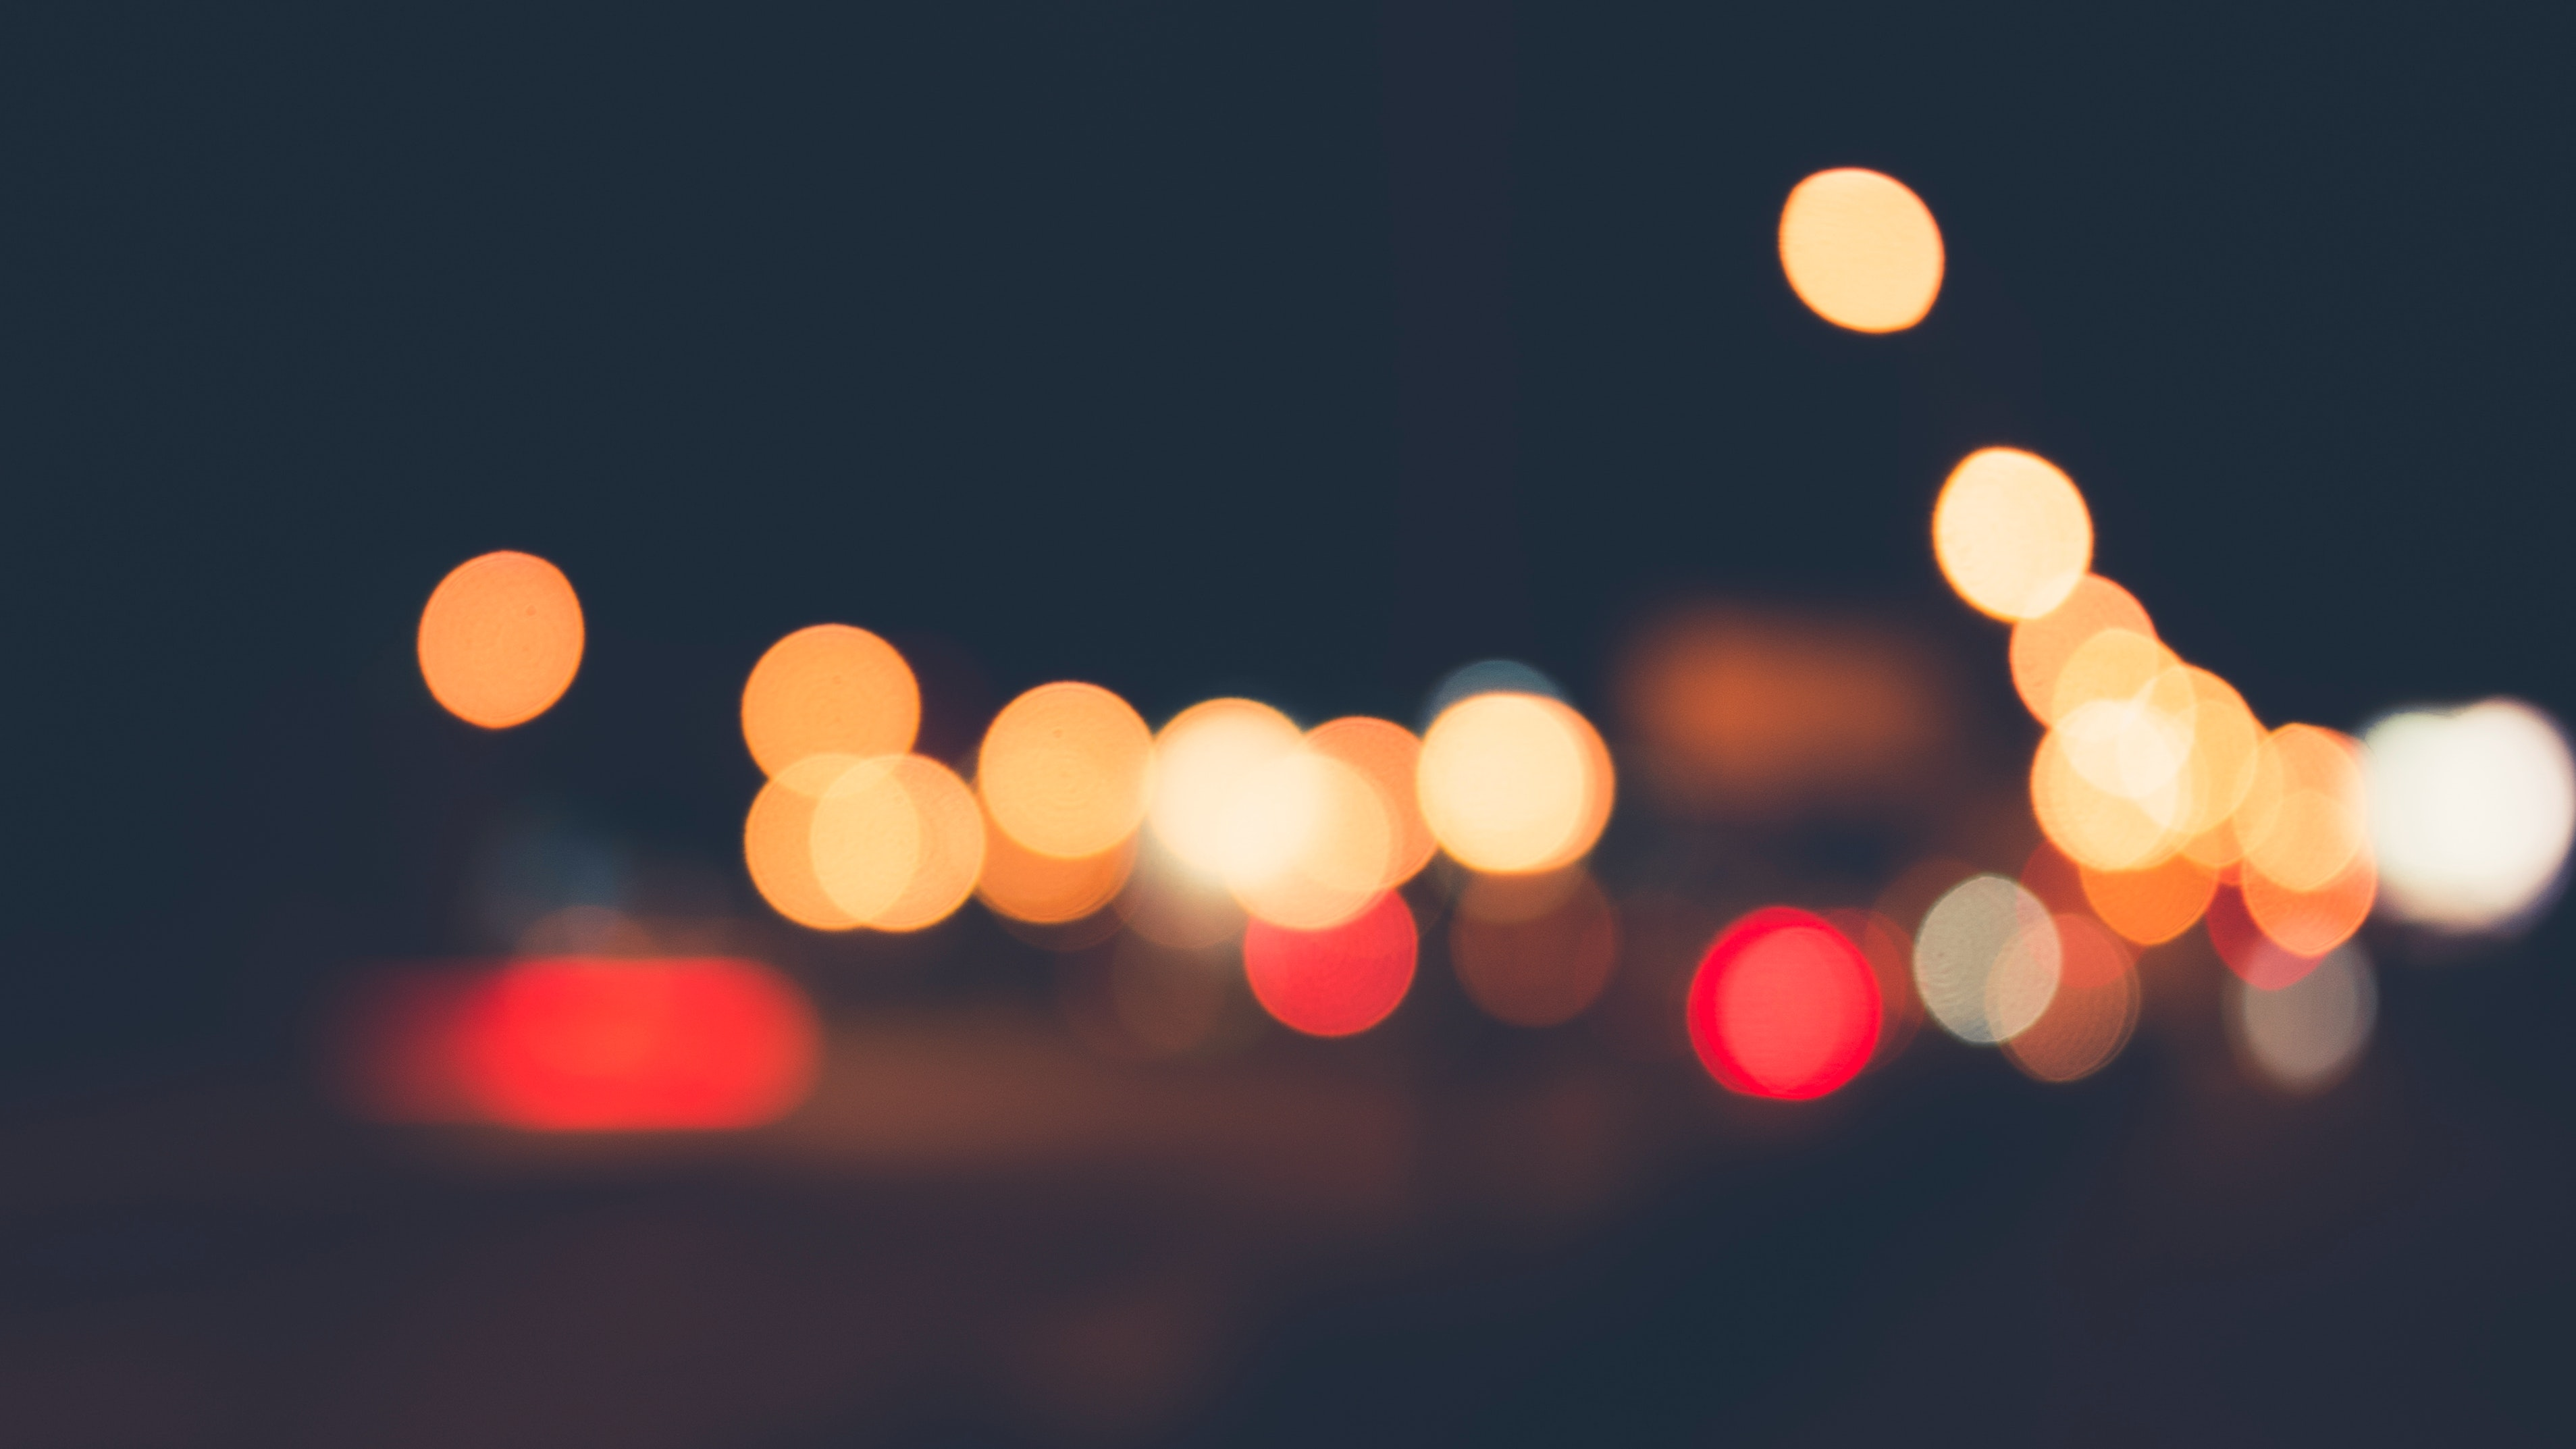 Orange And Red Bokeh Photography 183 Free Stock Photo